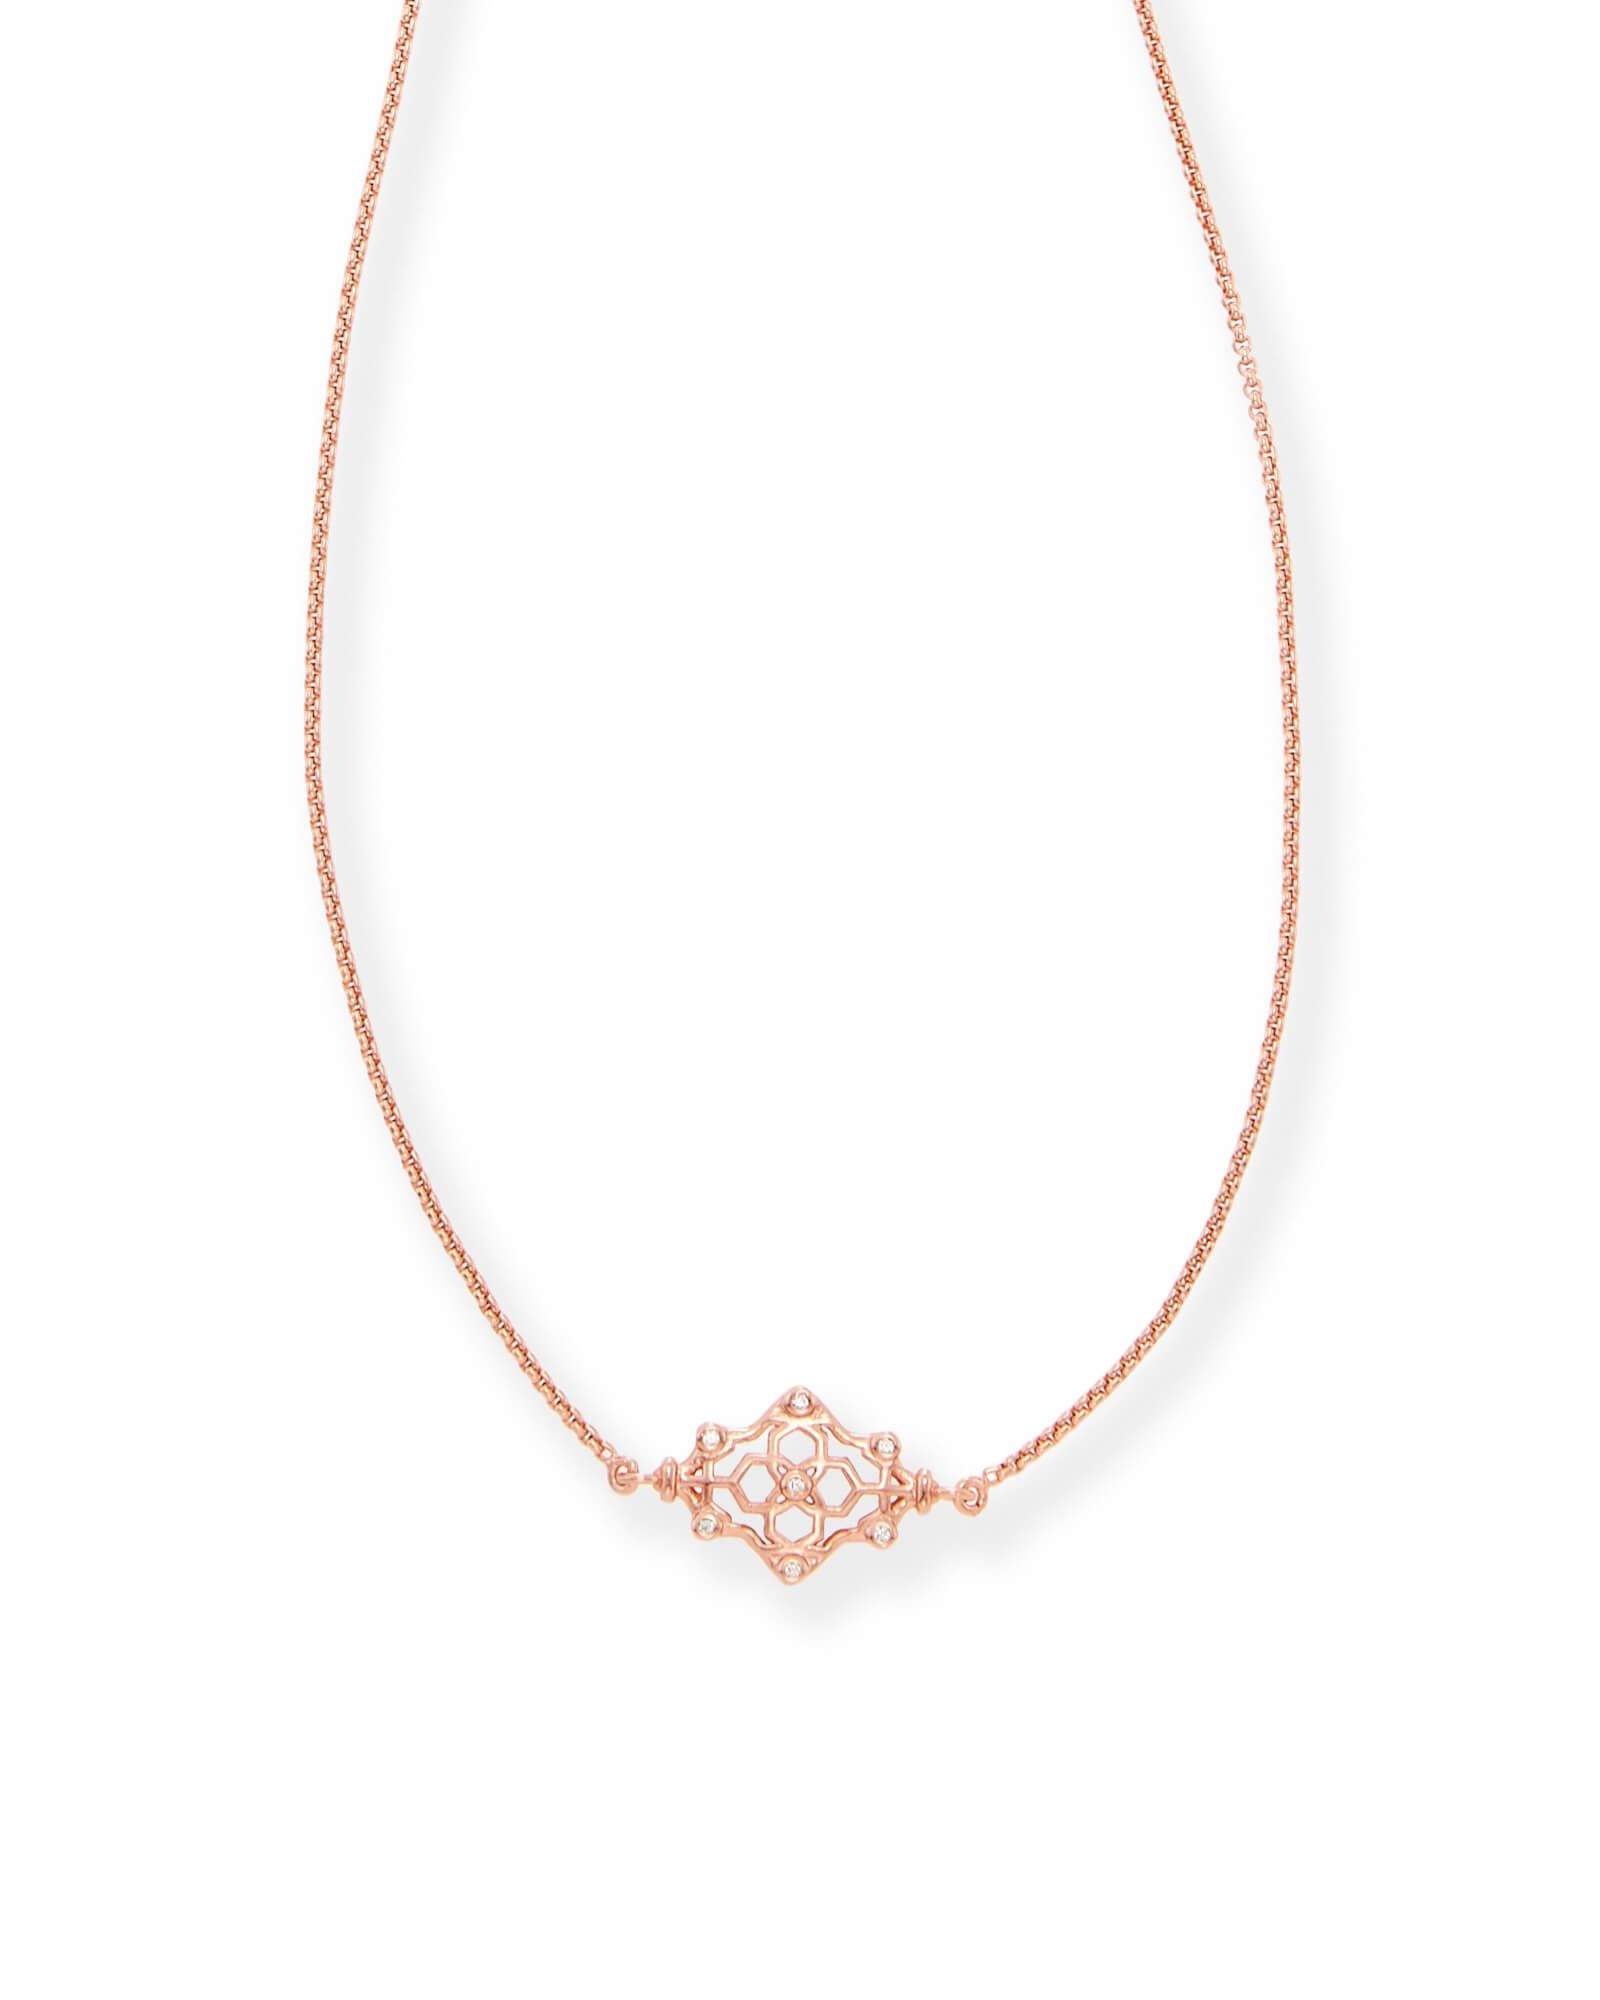 Riley pendant necklace in rose gold things i likewant pinterest